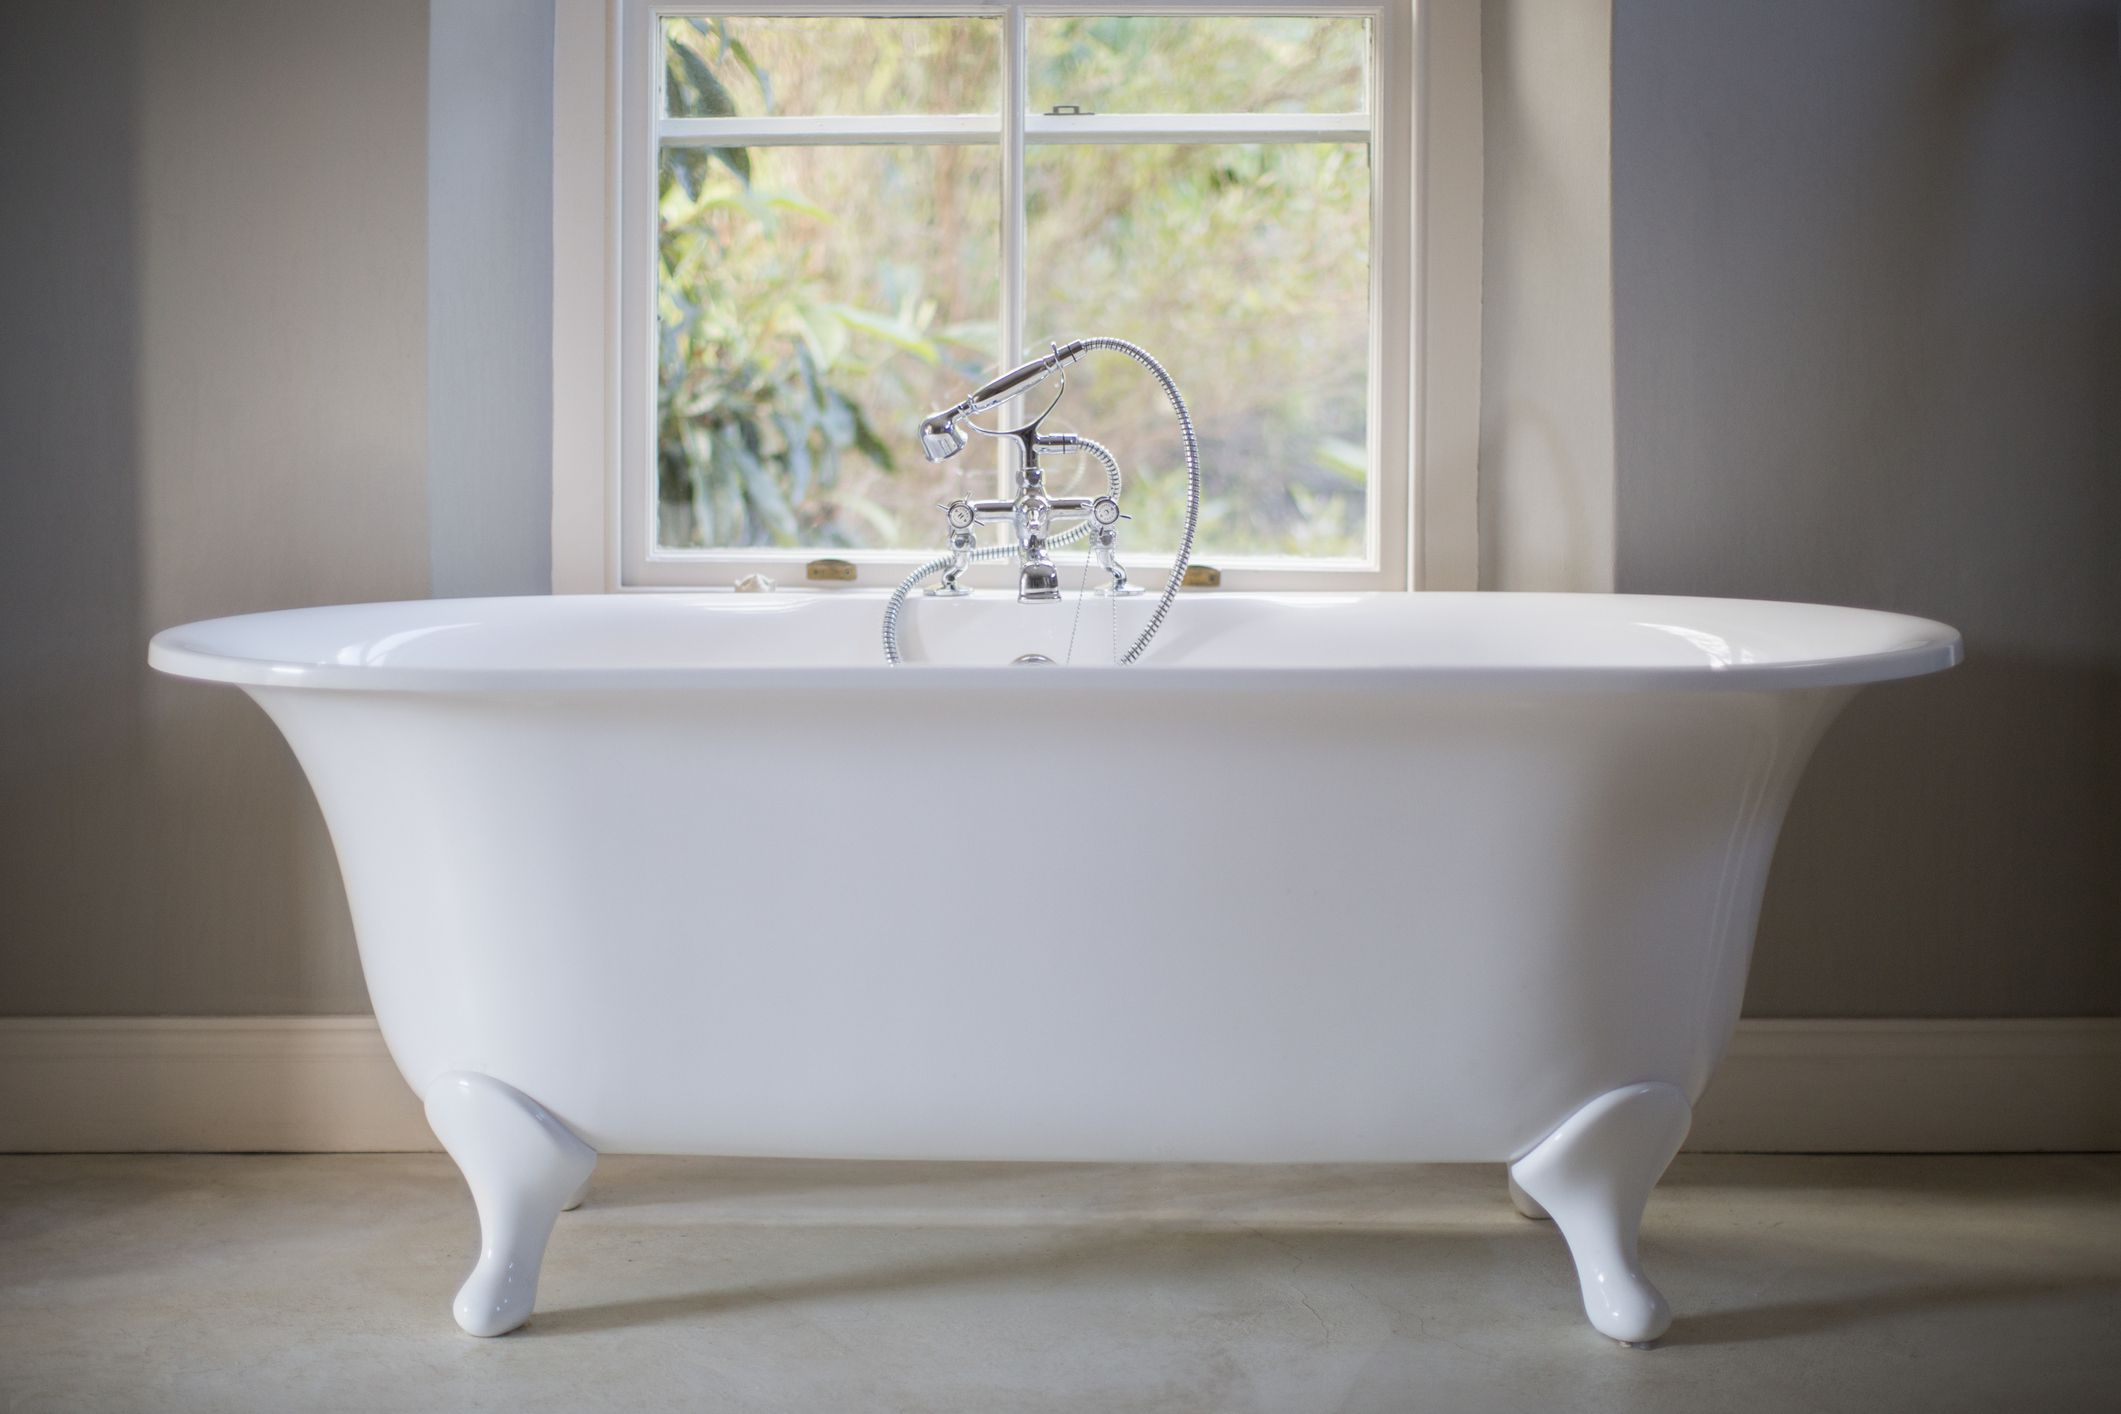 Repairing A Bathtub That Has Already Been Refinished